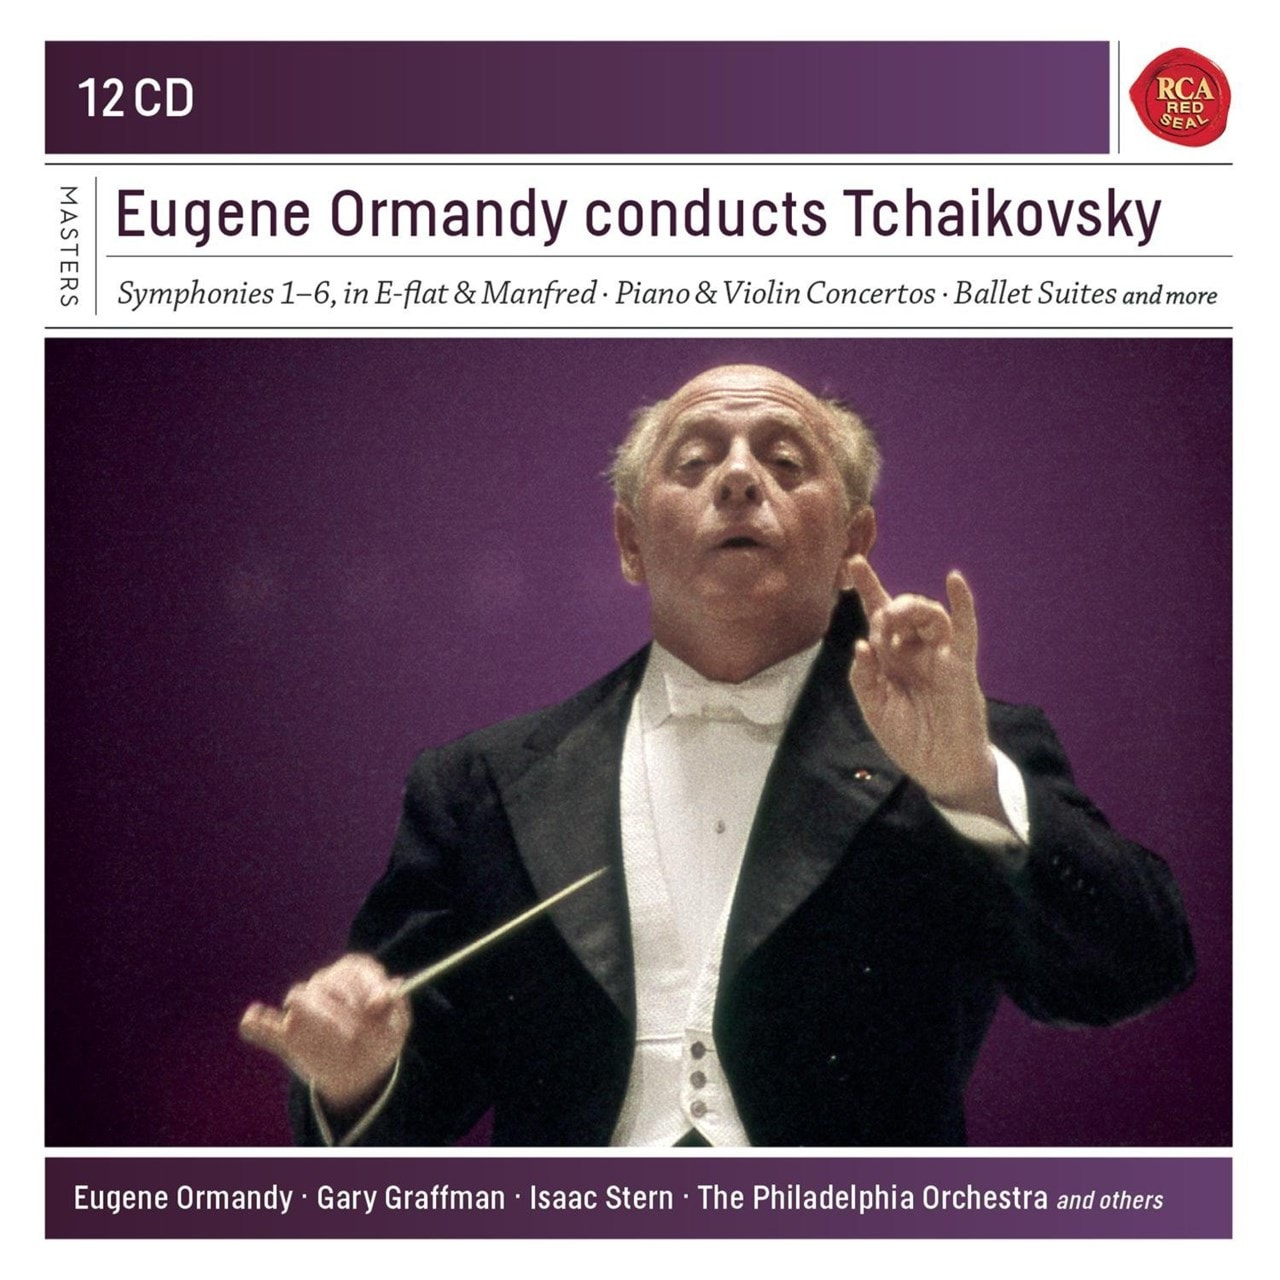 Eugene Ormandy Conducts Tchaikovsky - 1